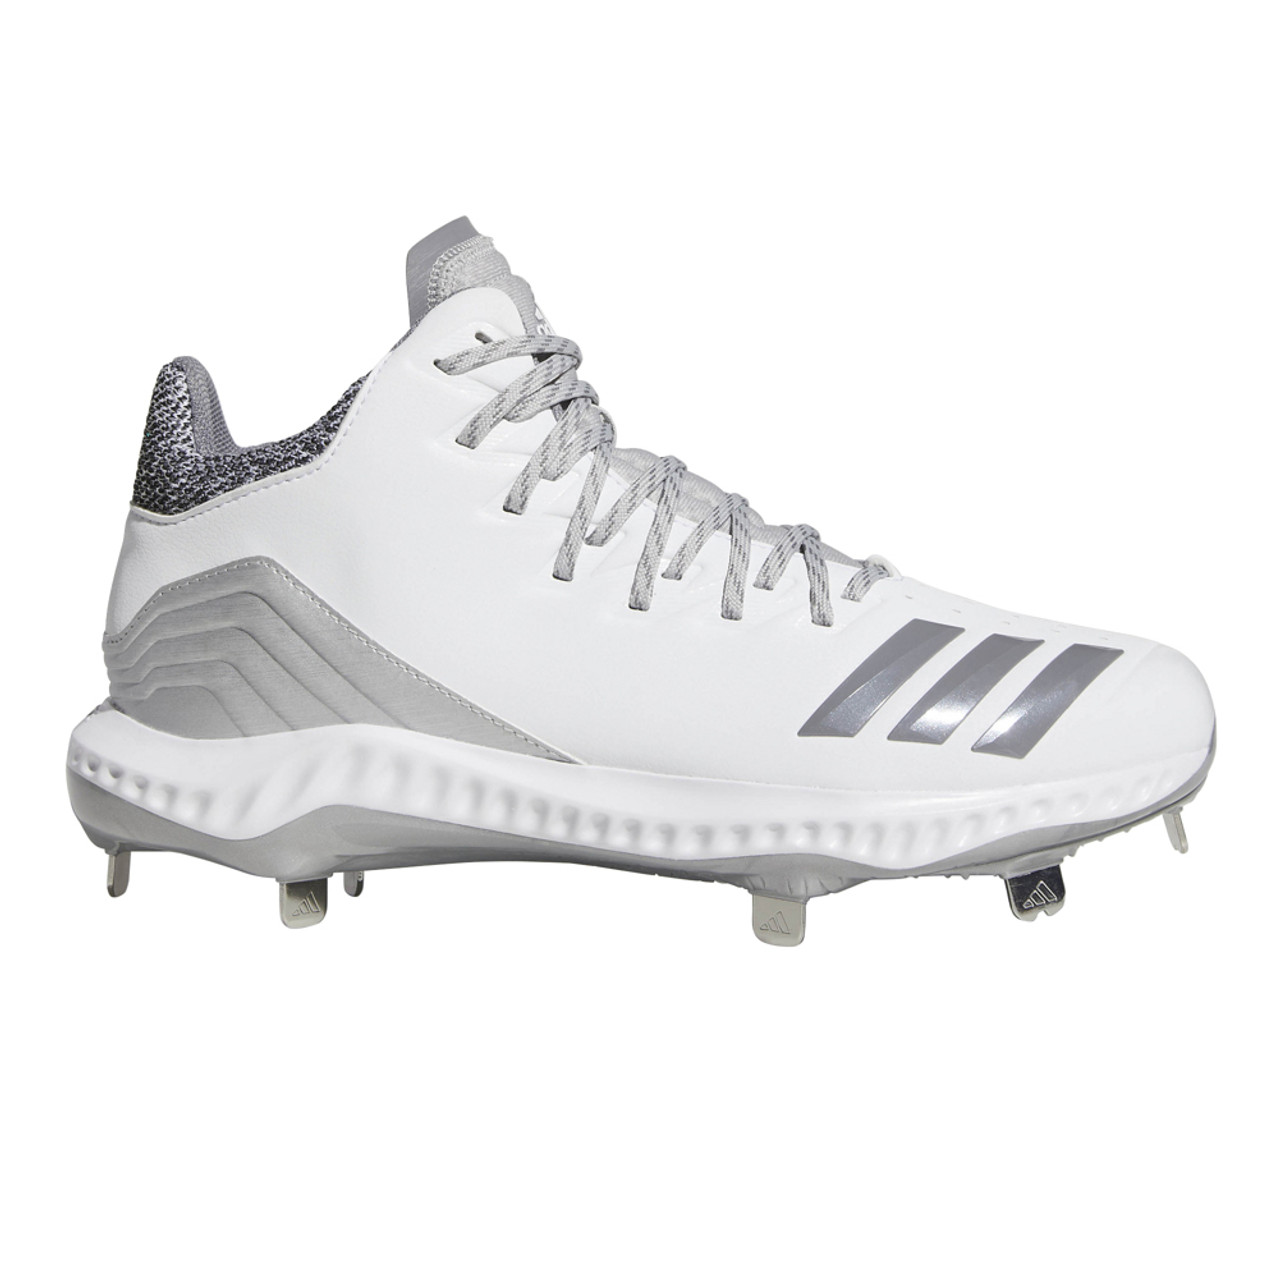 the latest e732b e9d58 Adidas Men s Icon Bounce Mid Baseball Cleat White Grey - Shop now   Shoolu.